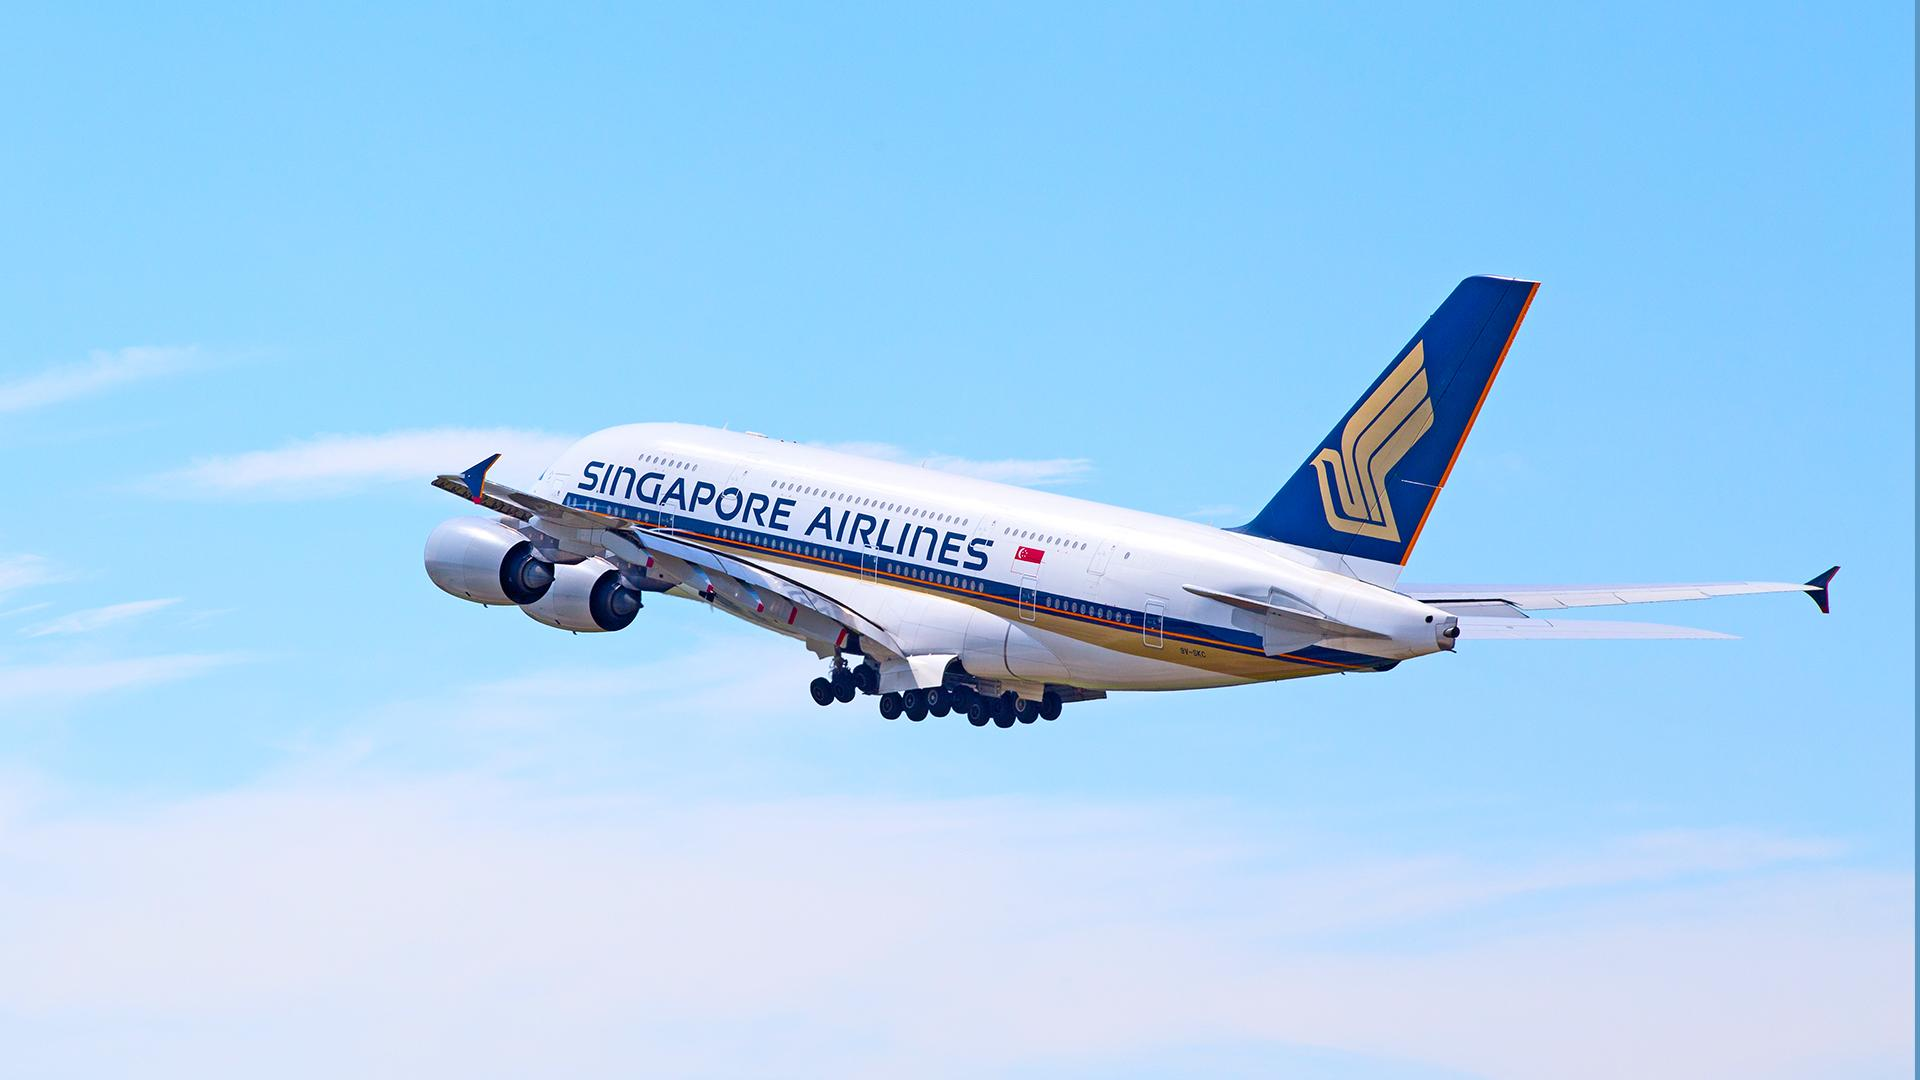 Singapore airlines from Zurich Stravel